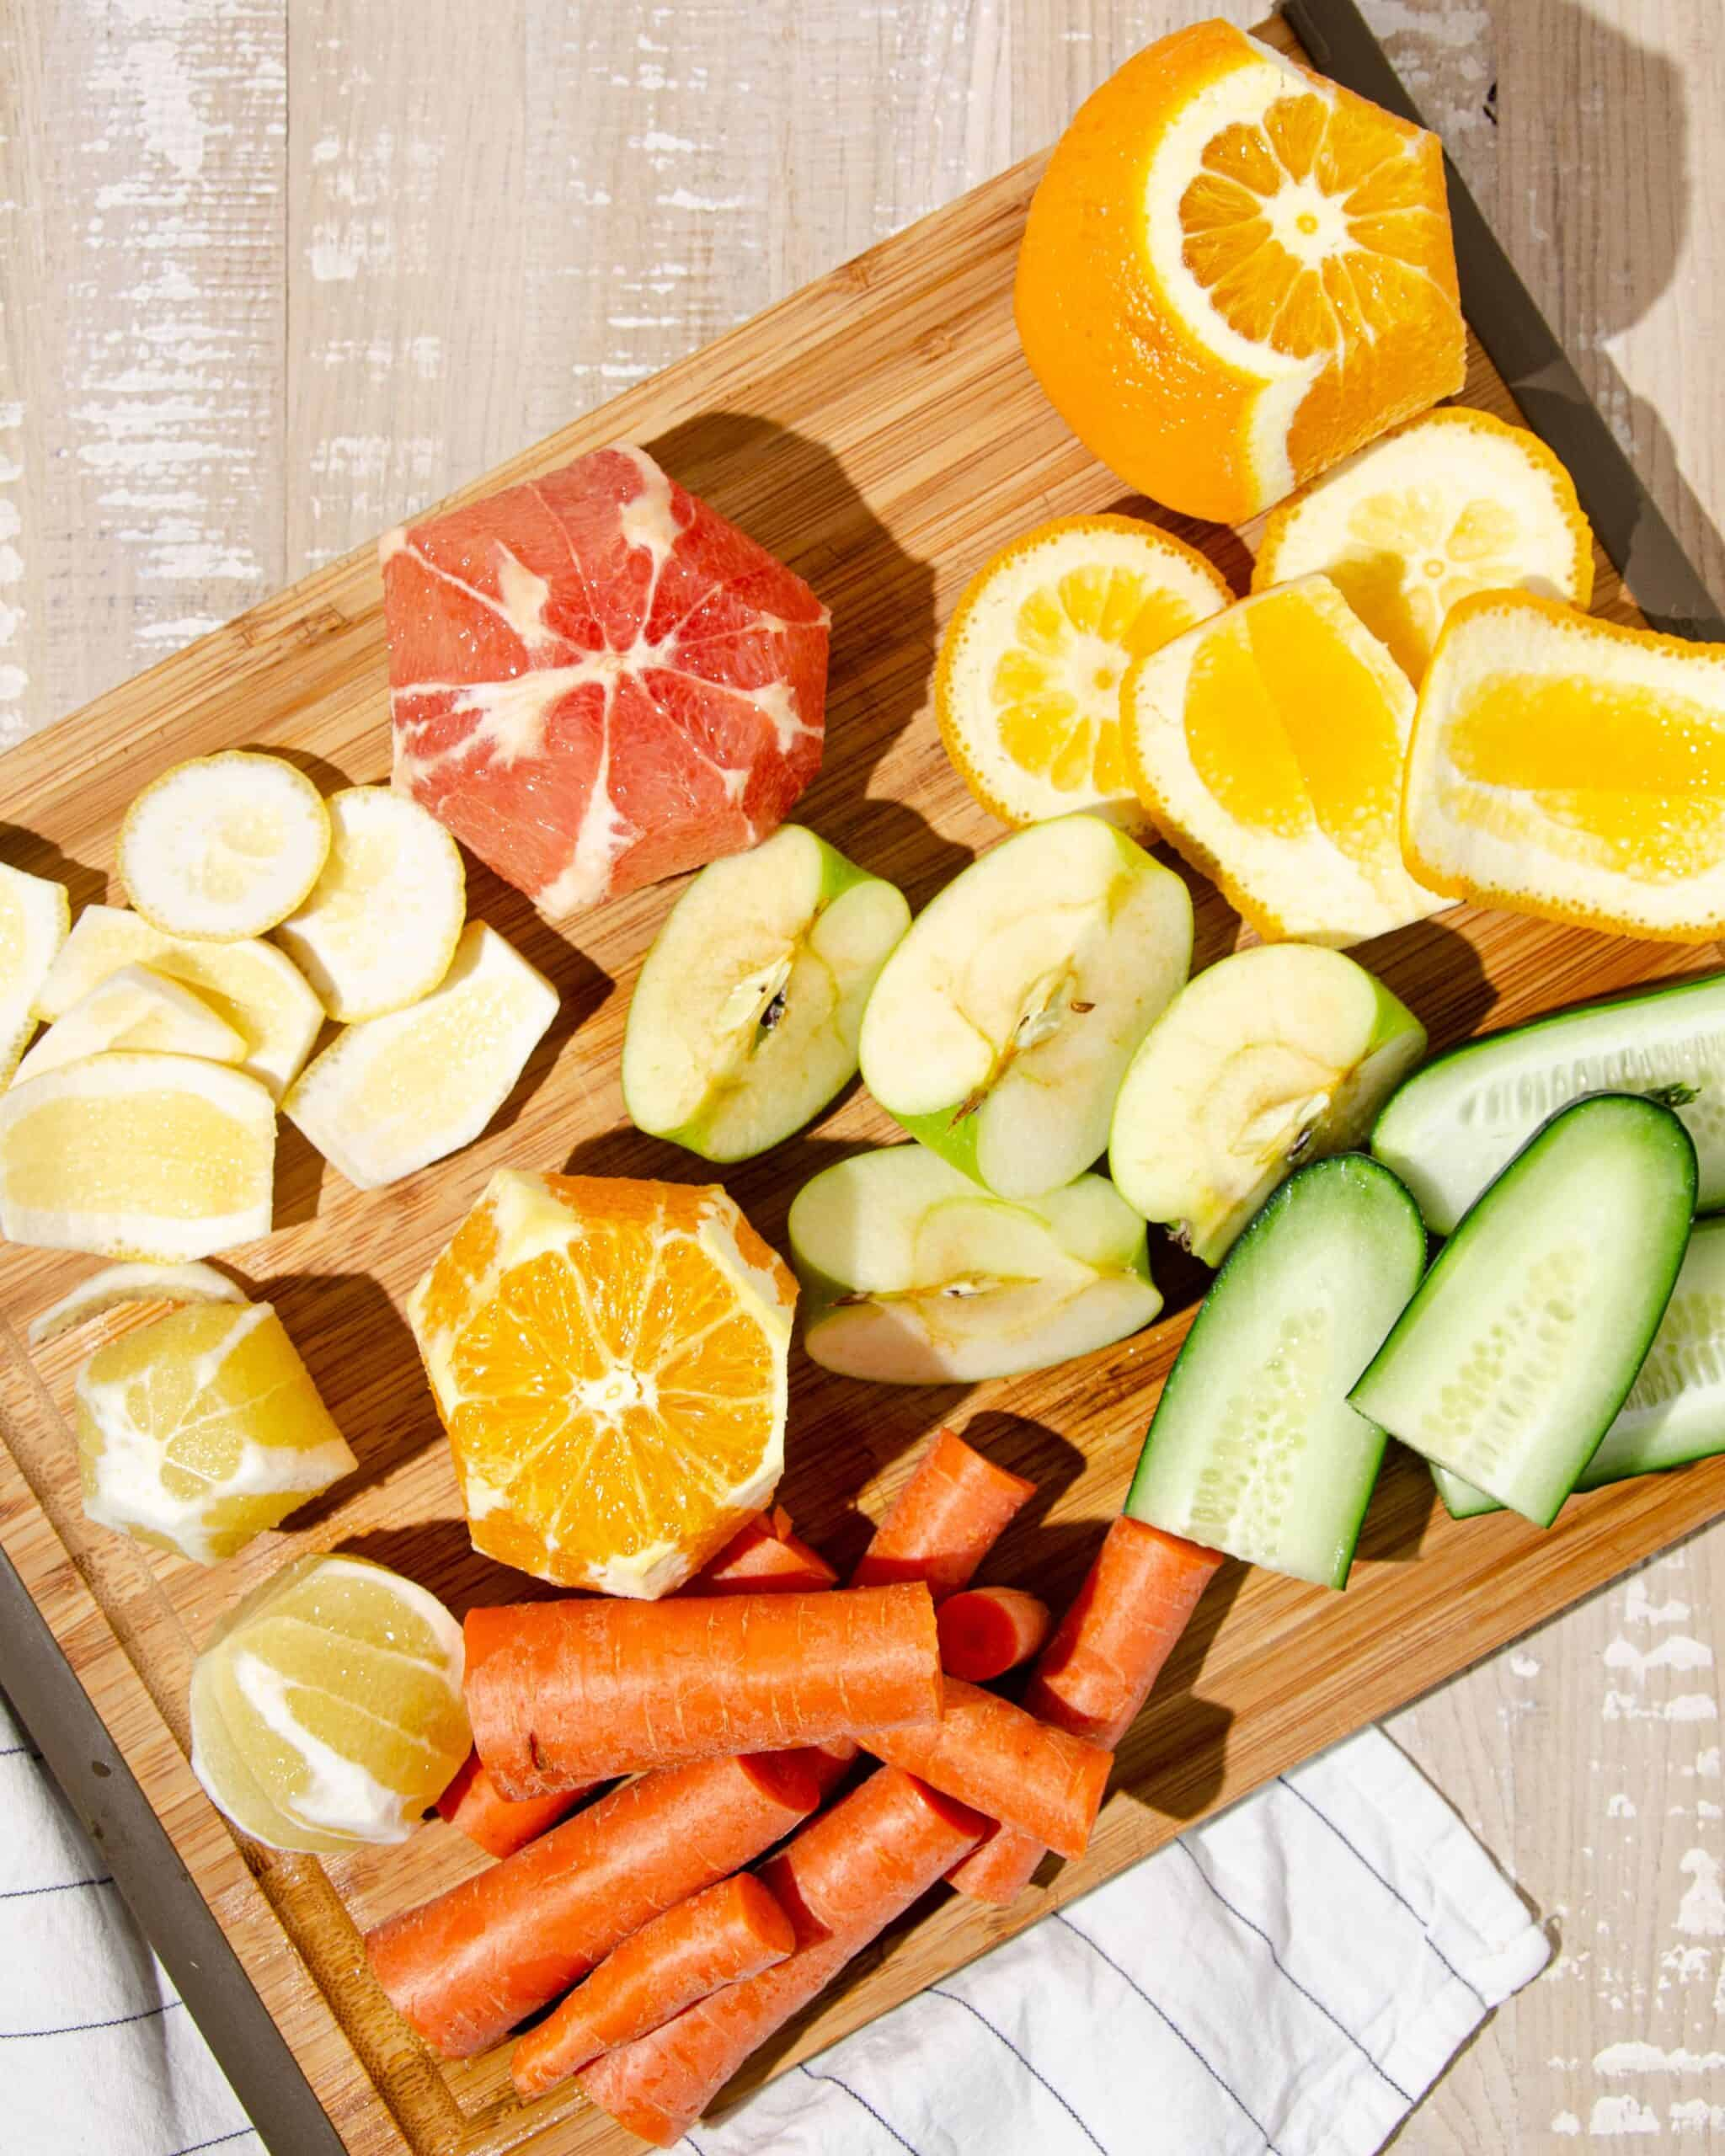 chopped ingredients for juicing - quartered green apples, peeled oranges, grapefruit and lemons, chopped cucumbers, and rough chopped carrots.